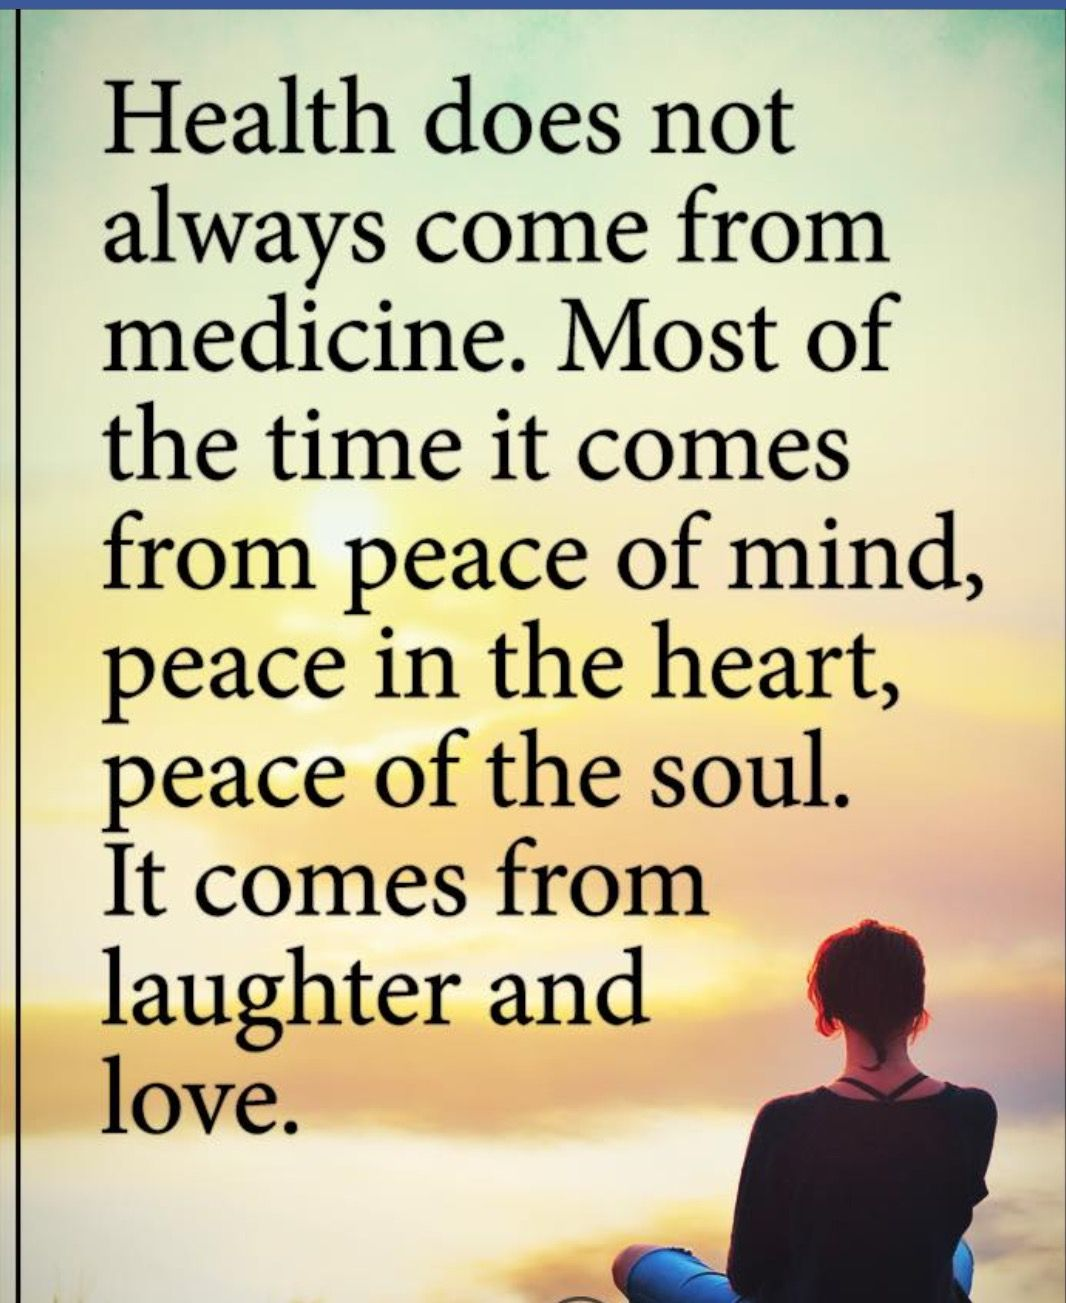 Love And Peace Quotes Healing The Body Doesn't Always Come From Medicinelaughter